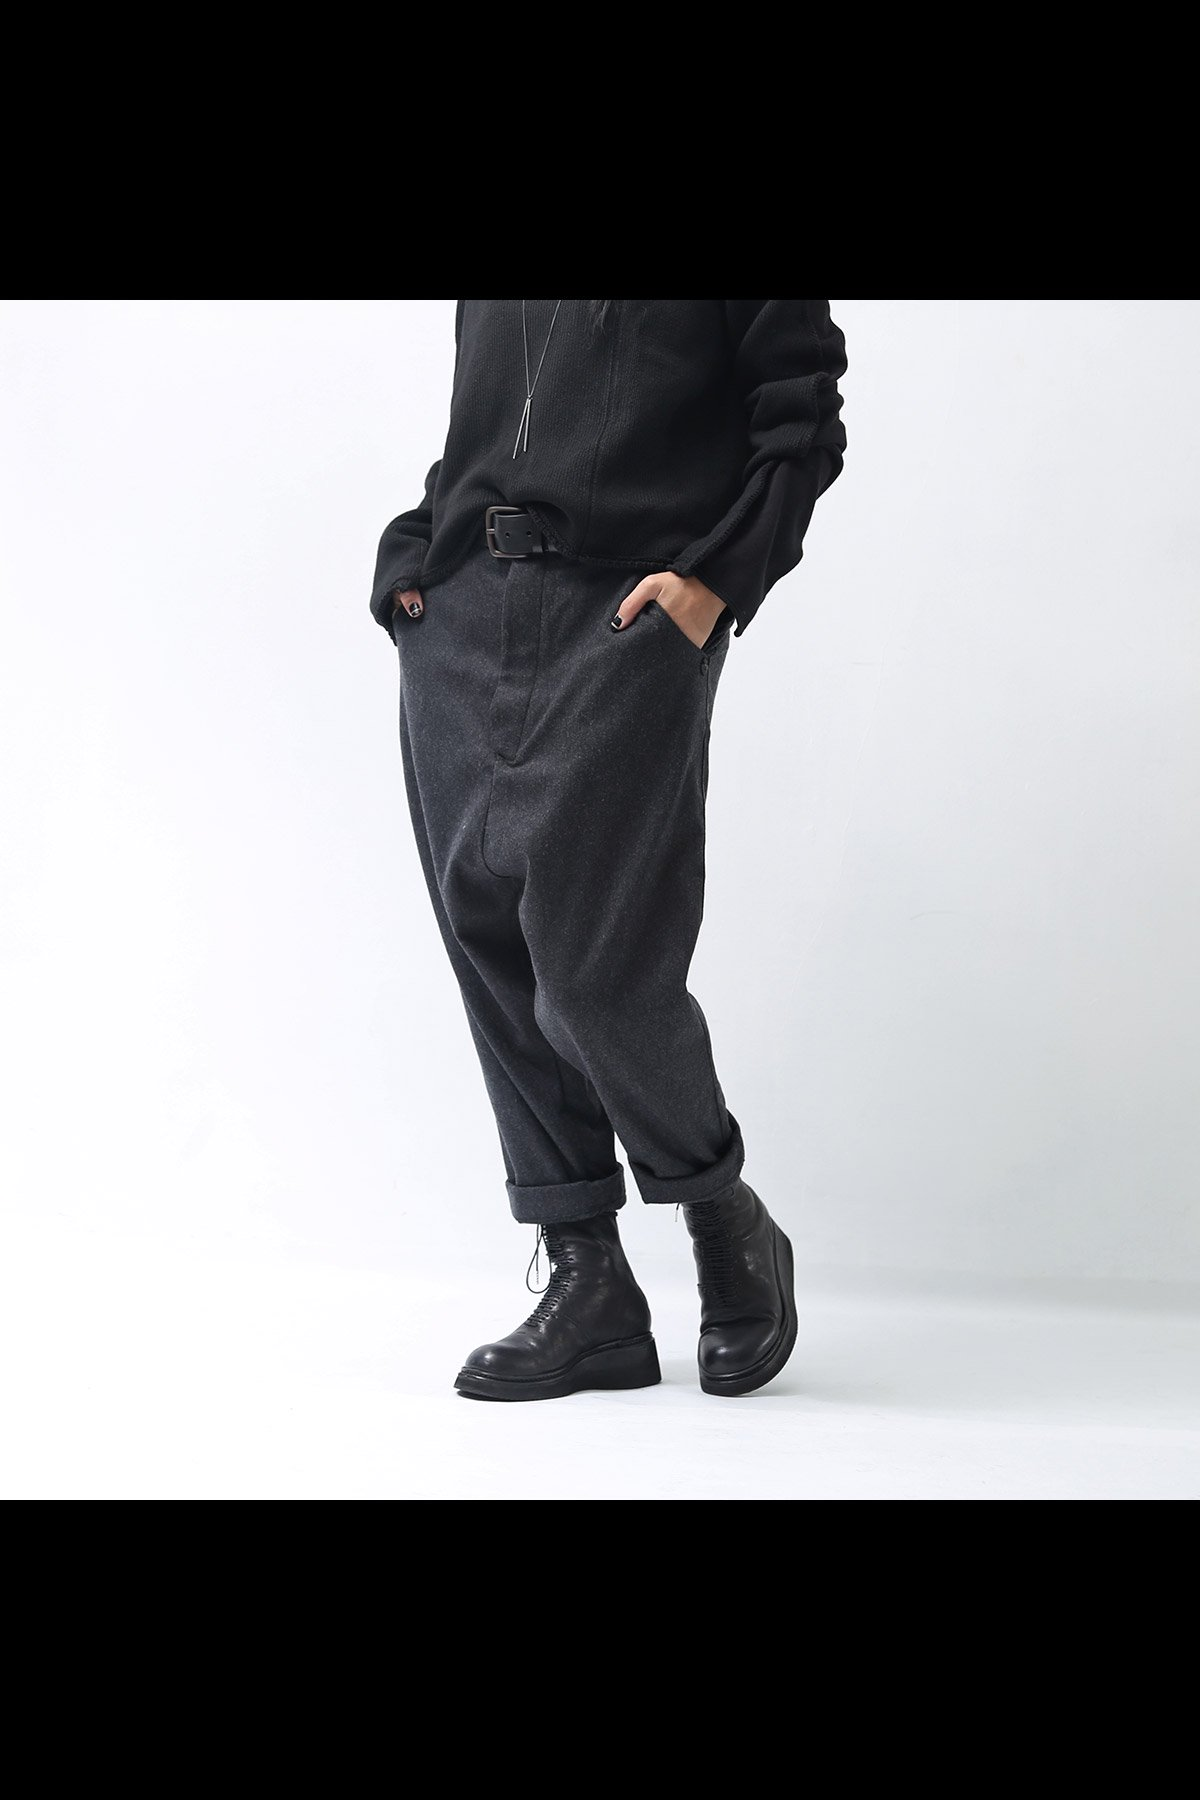 <img class='new_mark_img1' src='https://img.shop-pro.jp/img/new/icons8.gif' style='border:none;display:inline;margin:0px;padding:0px;width:auto;' />LOW CROTCH PANTS P28_SALE PEPE